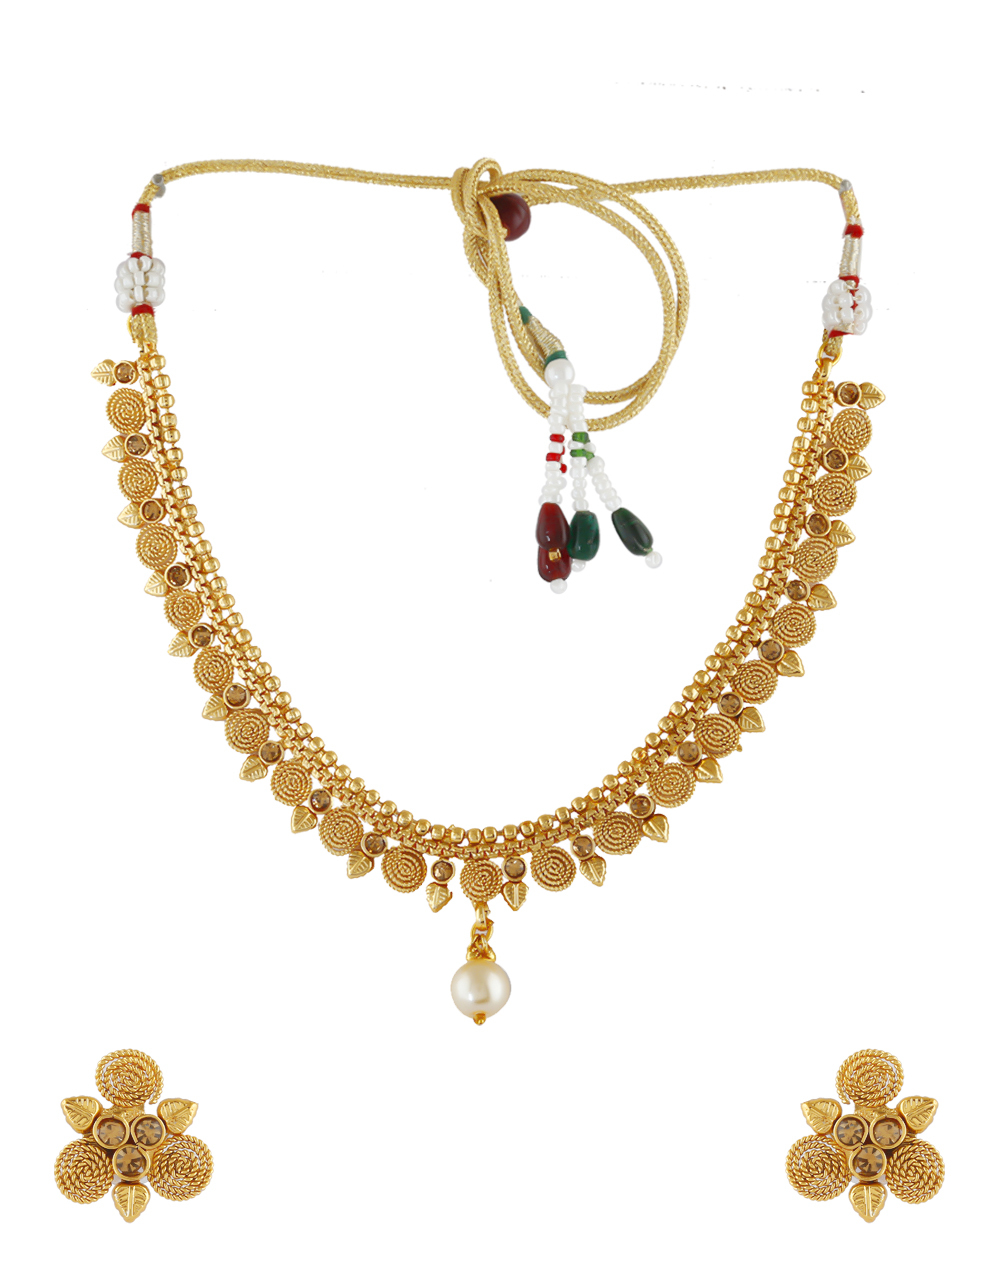 Leafy Design Gold Finish Stunning Traditional Necklace For Girls